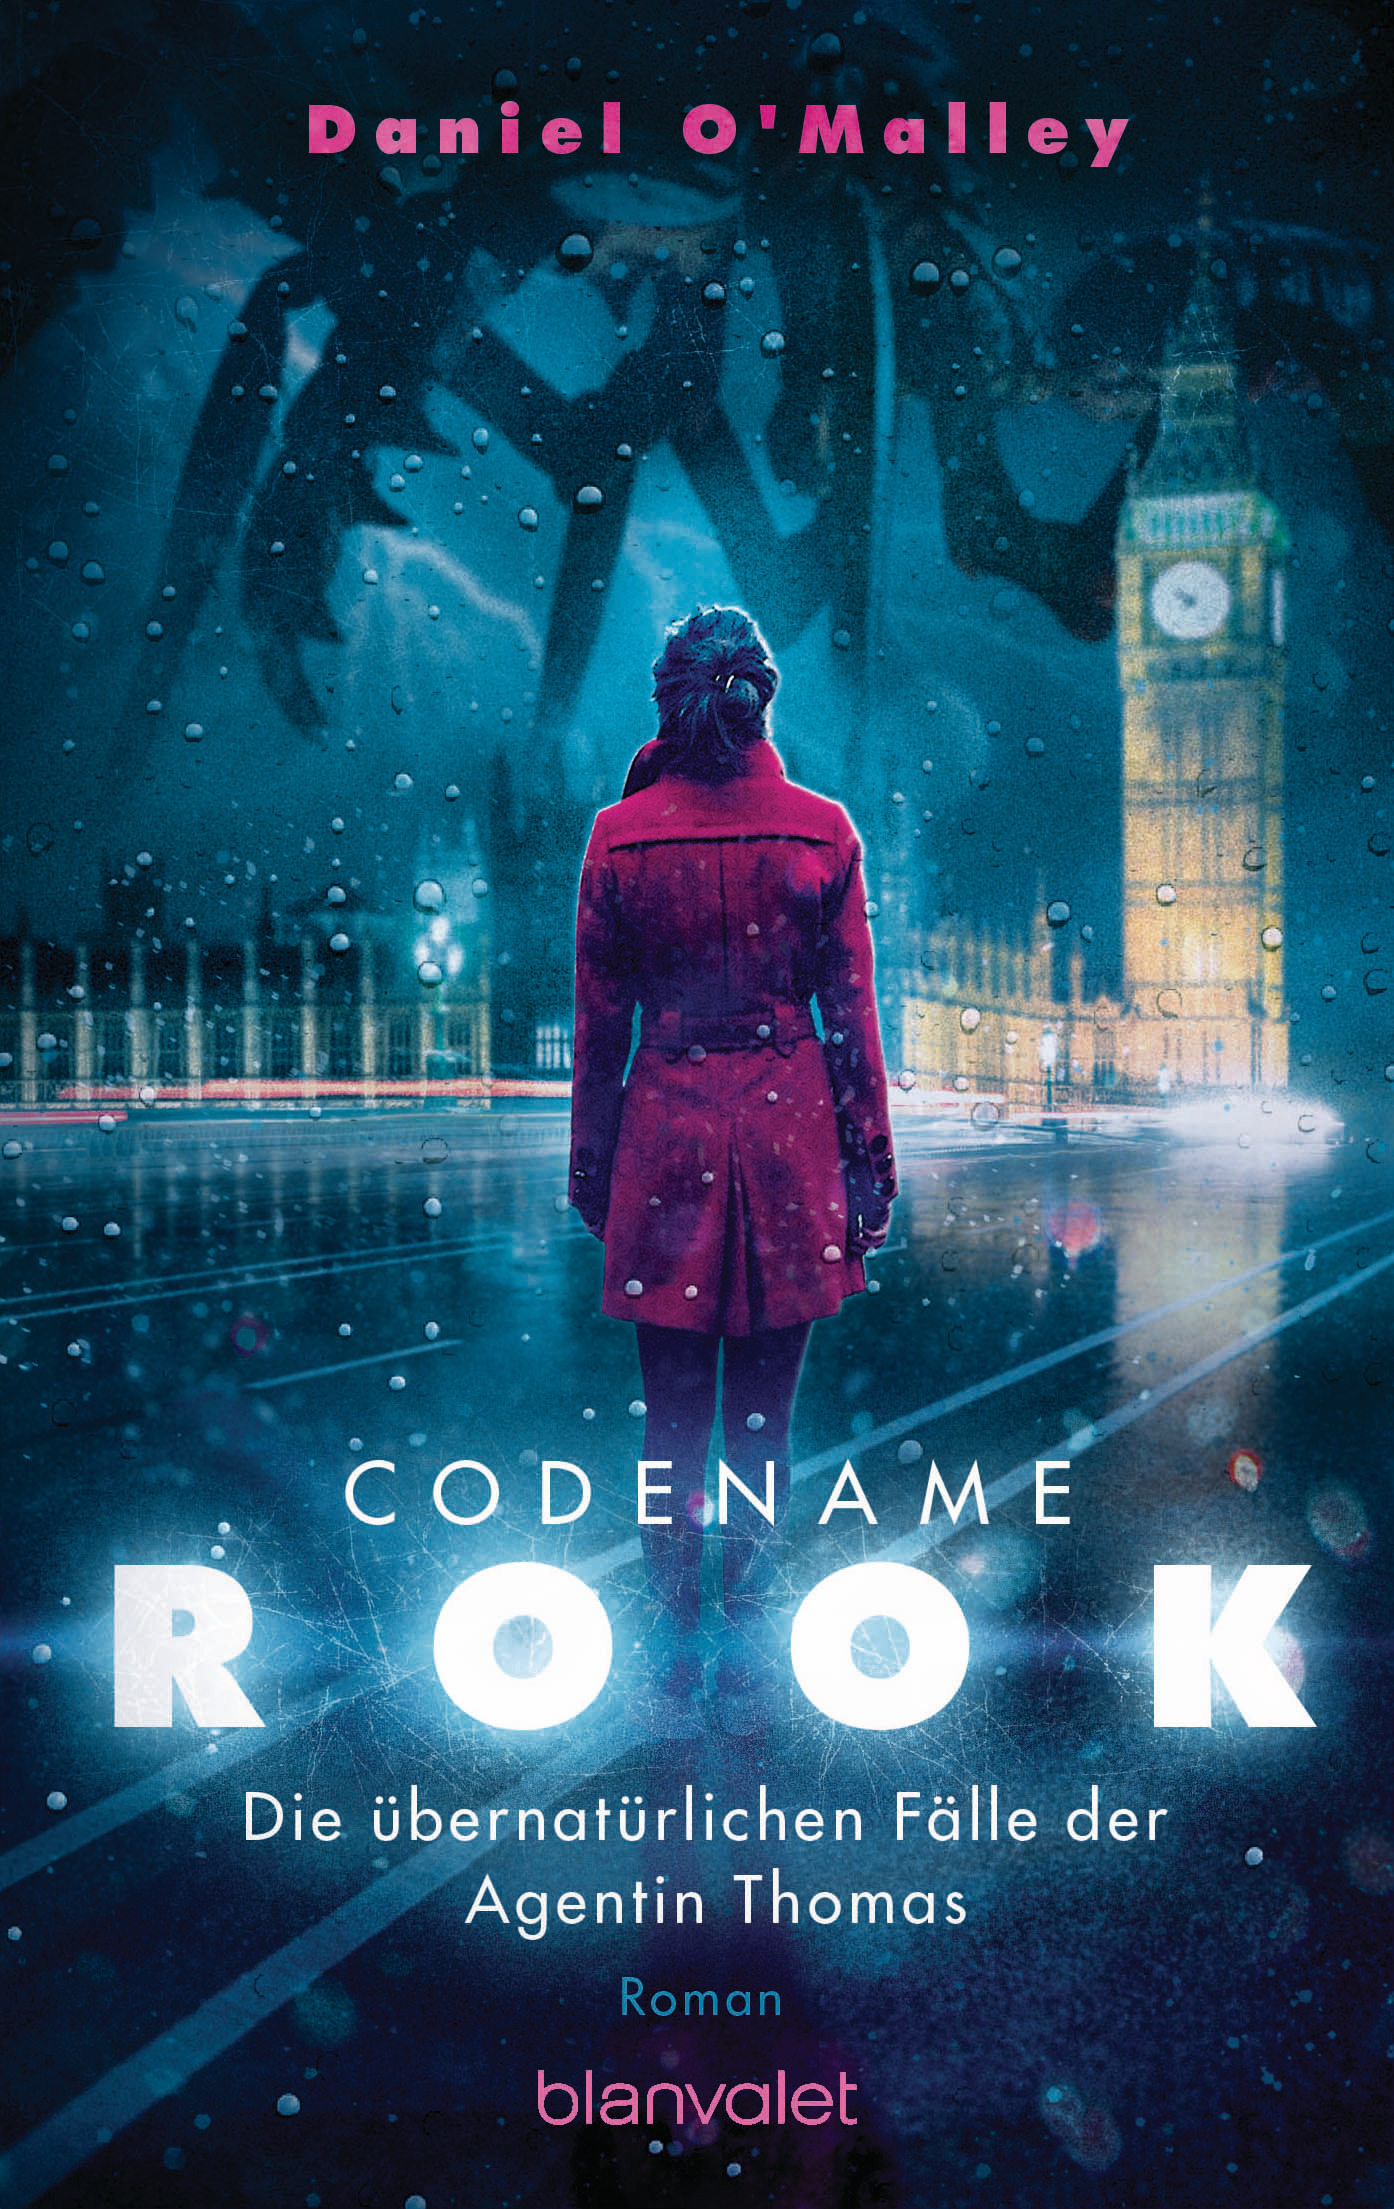 https://www.randomhouse.de/content/edition/covervoila_hires/OMalley_DCodename_Rook_1_187666.jpg